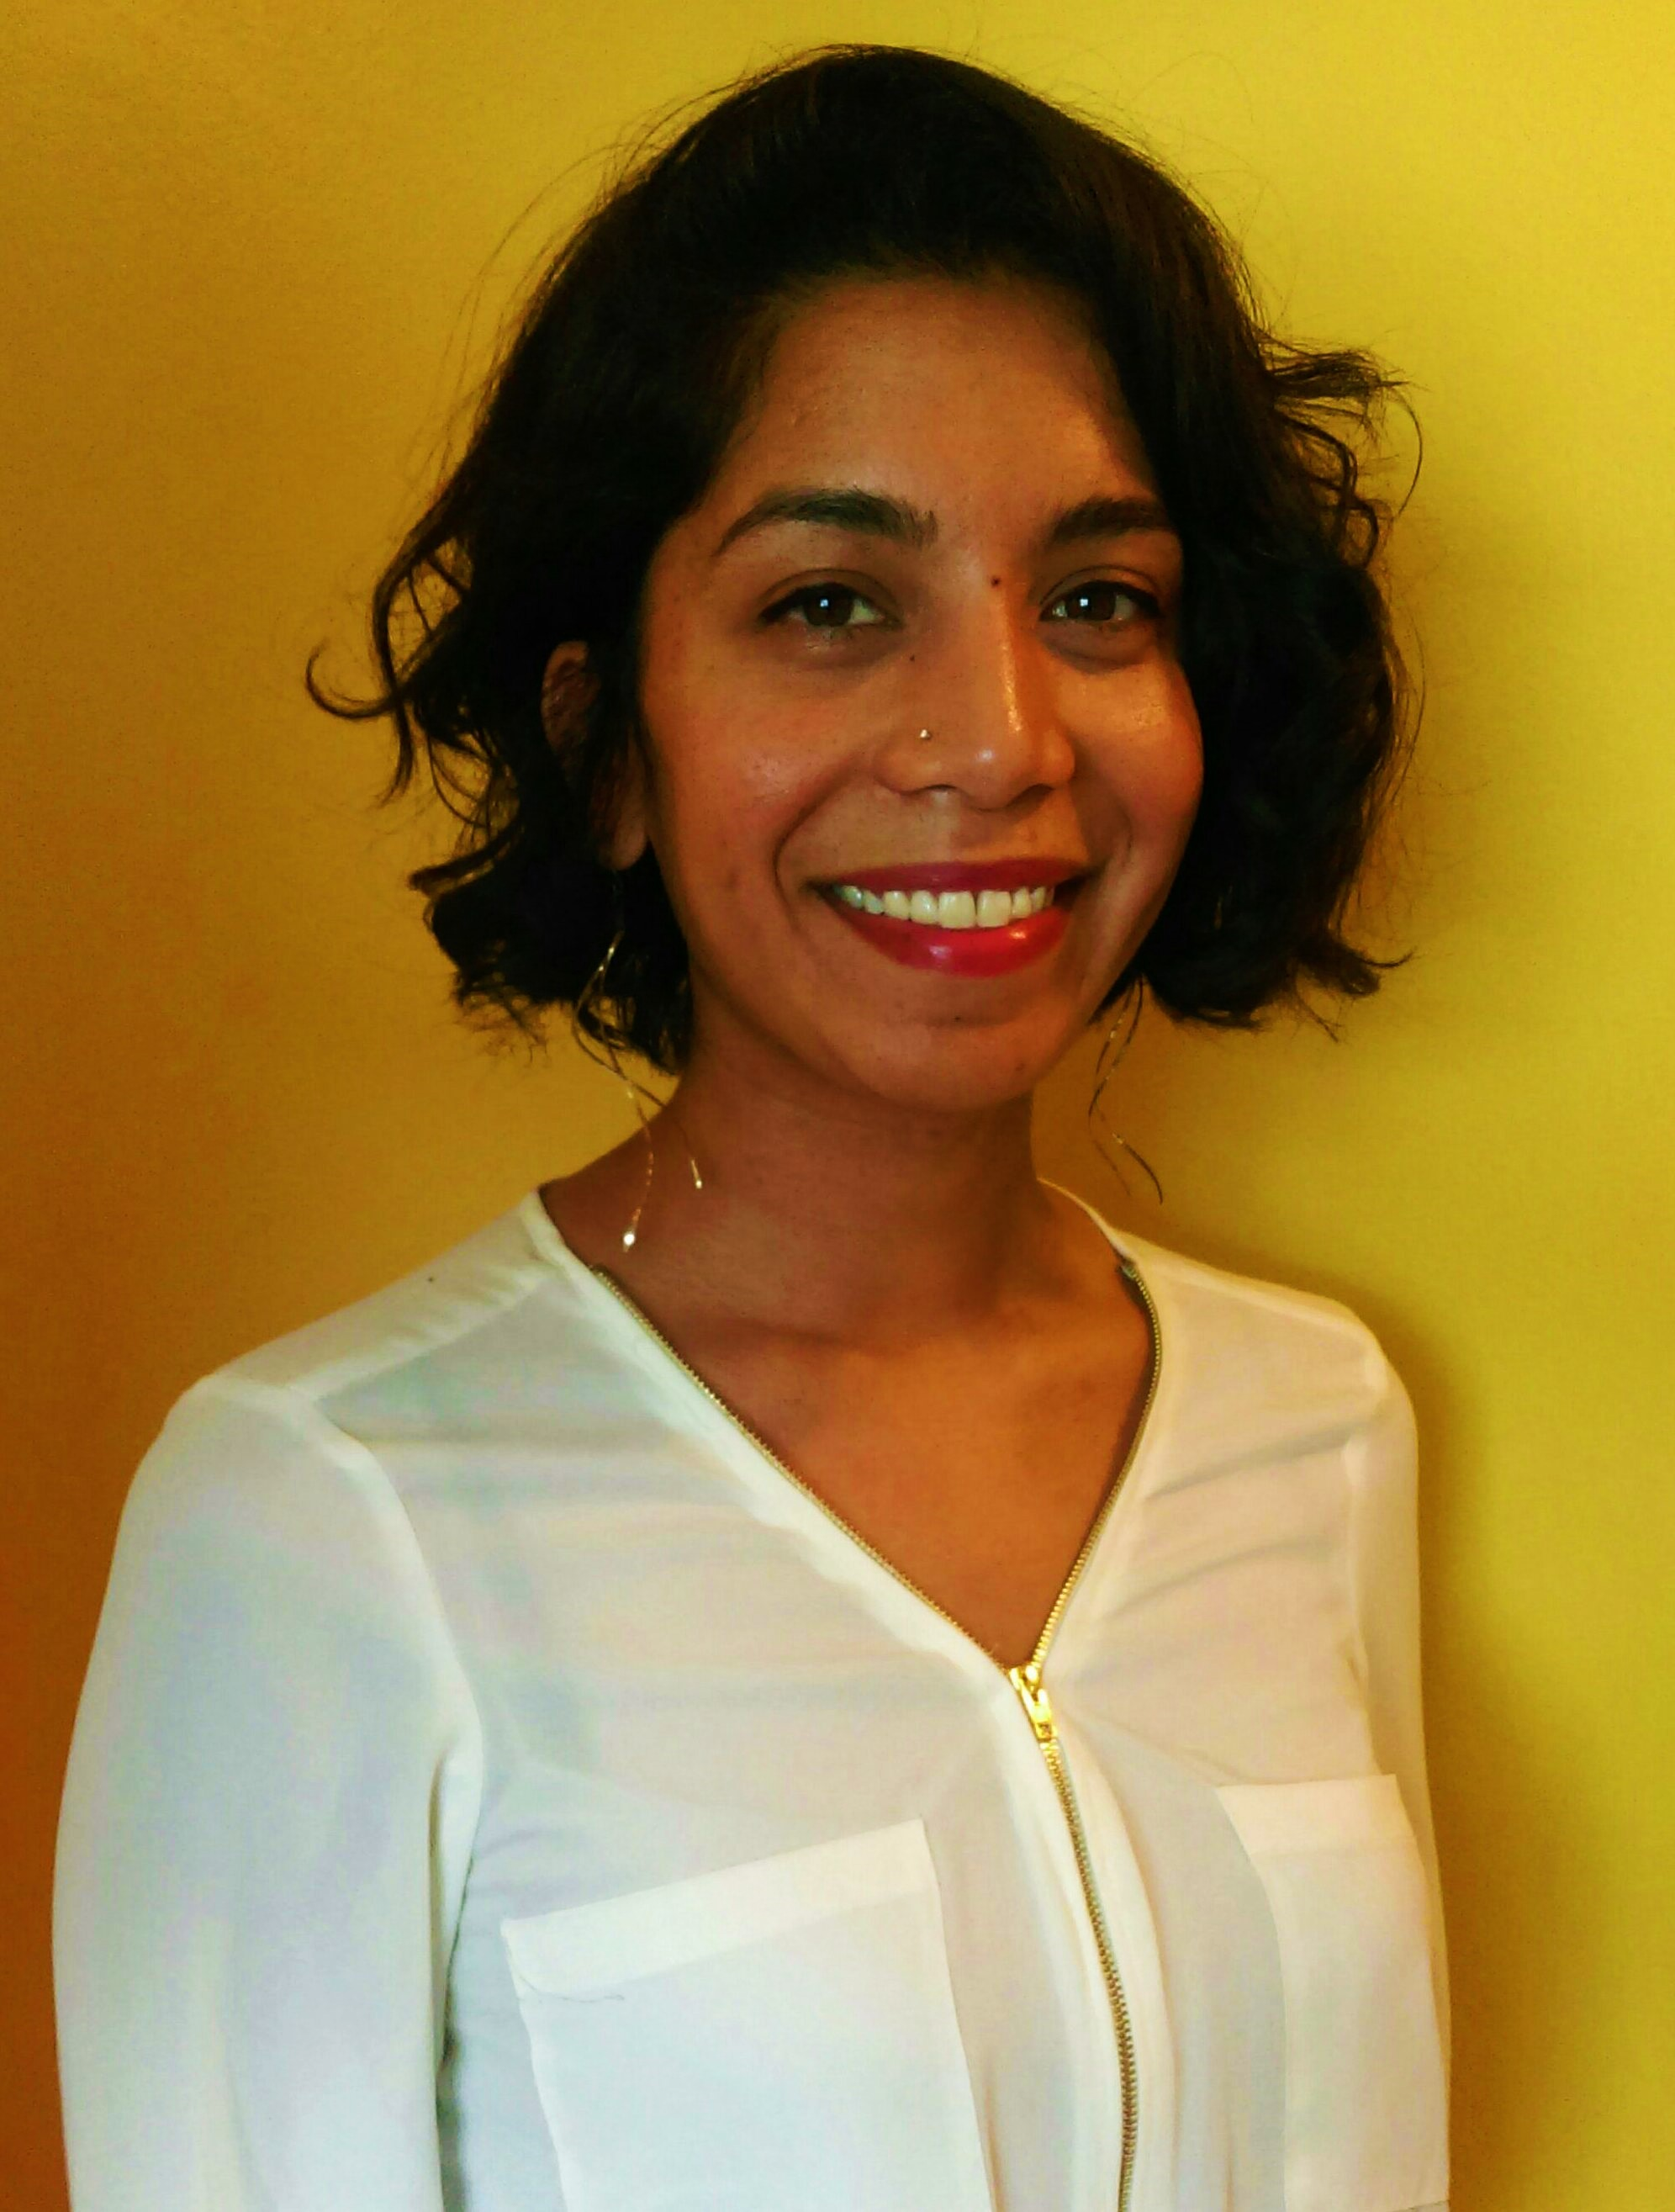 Cv dissertation chair